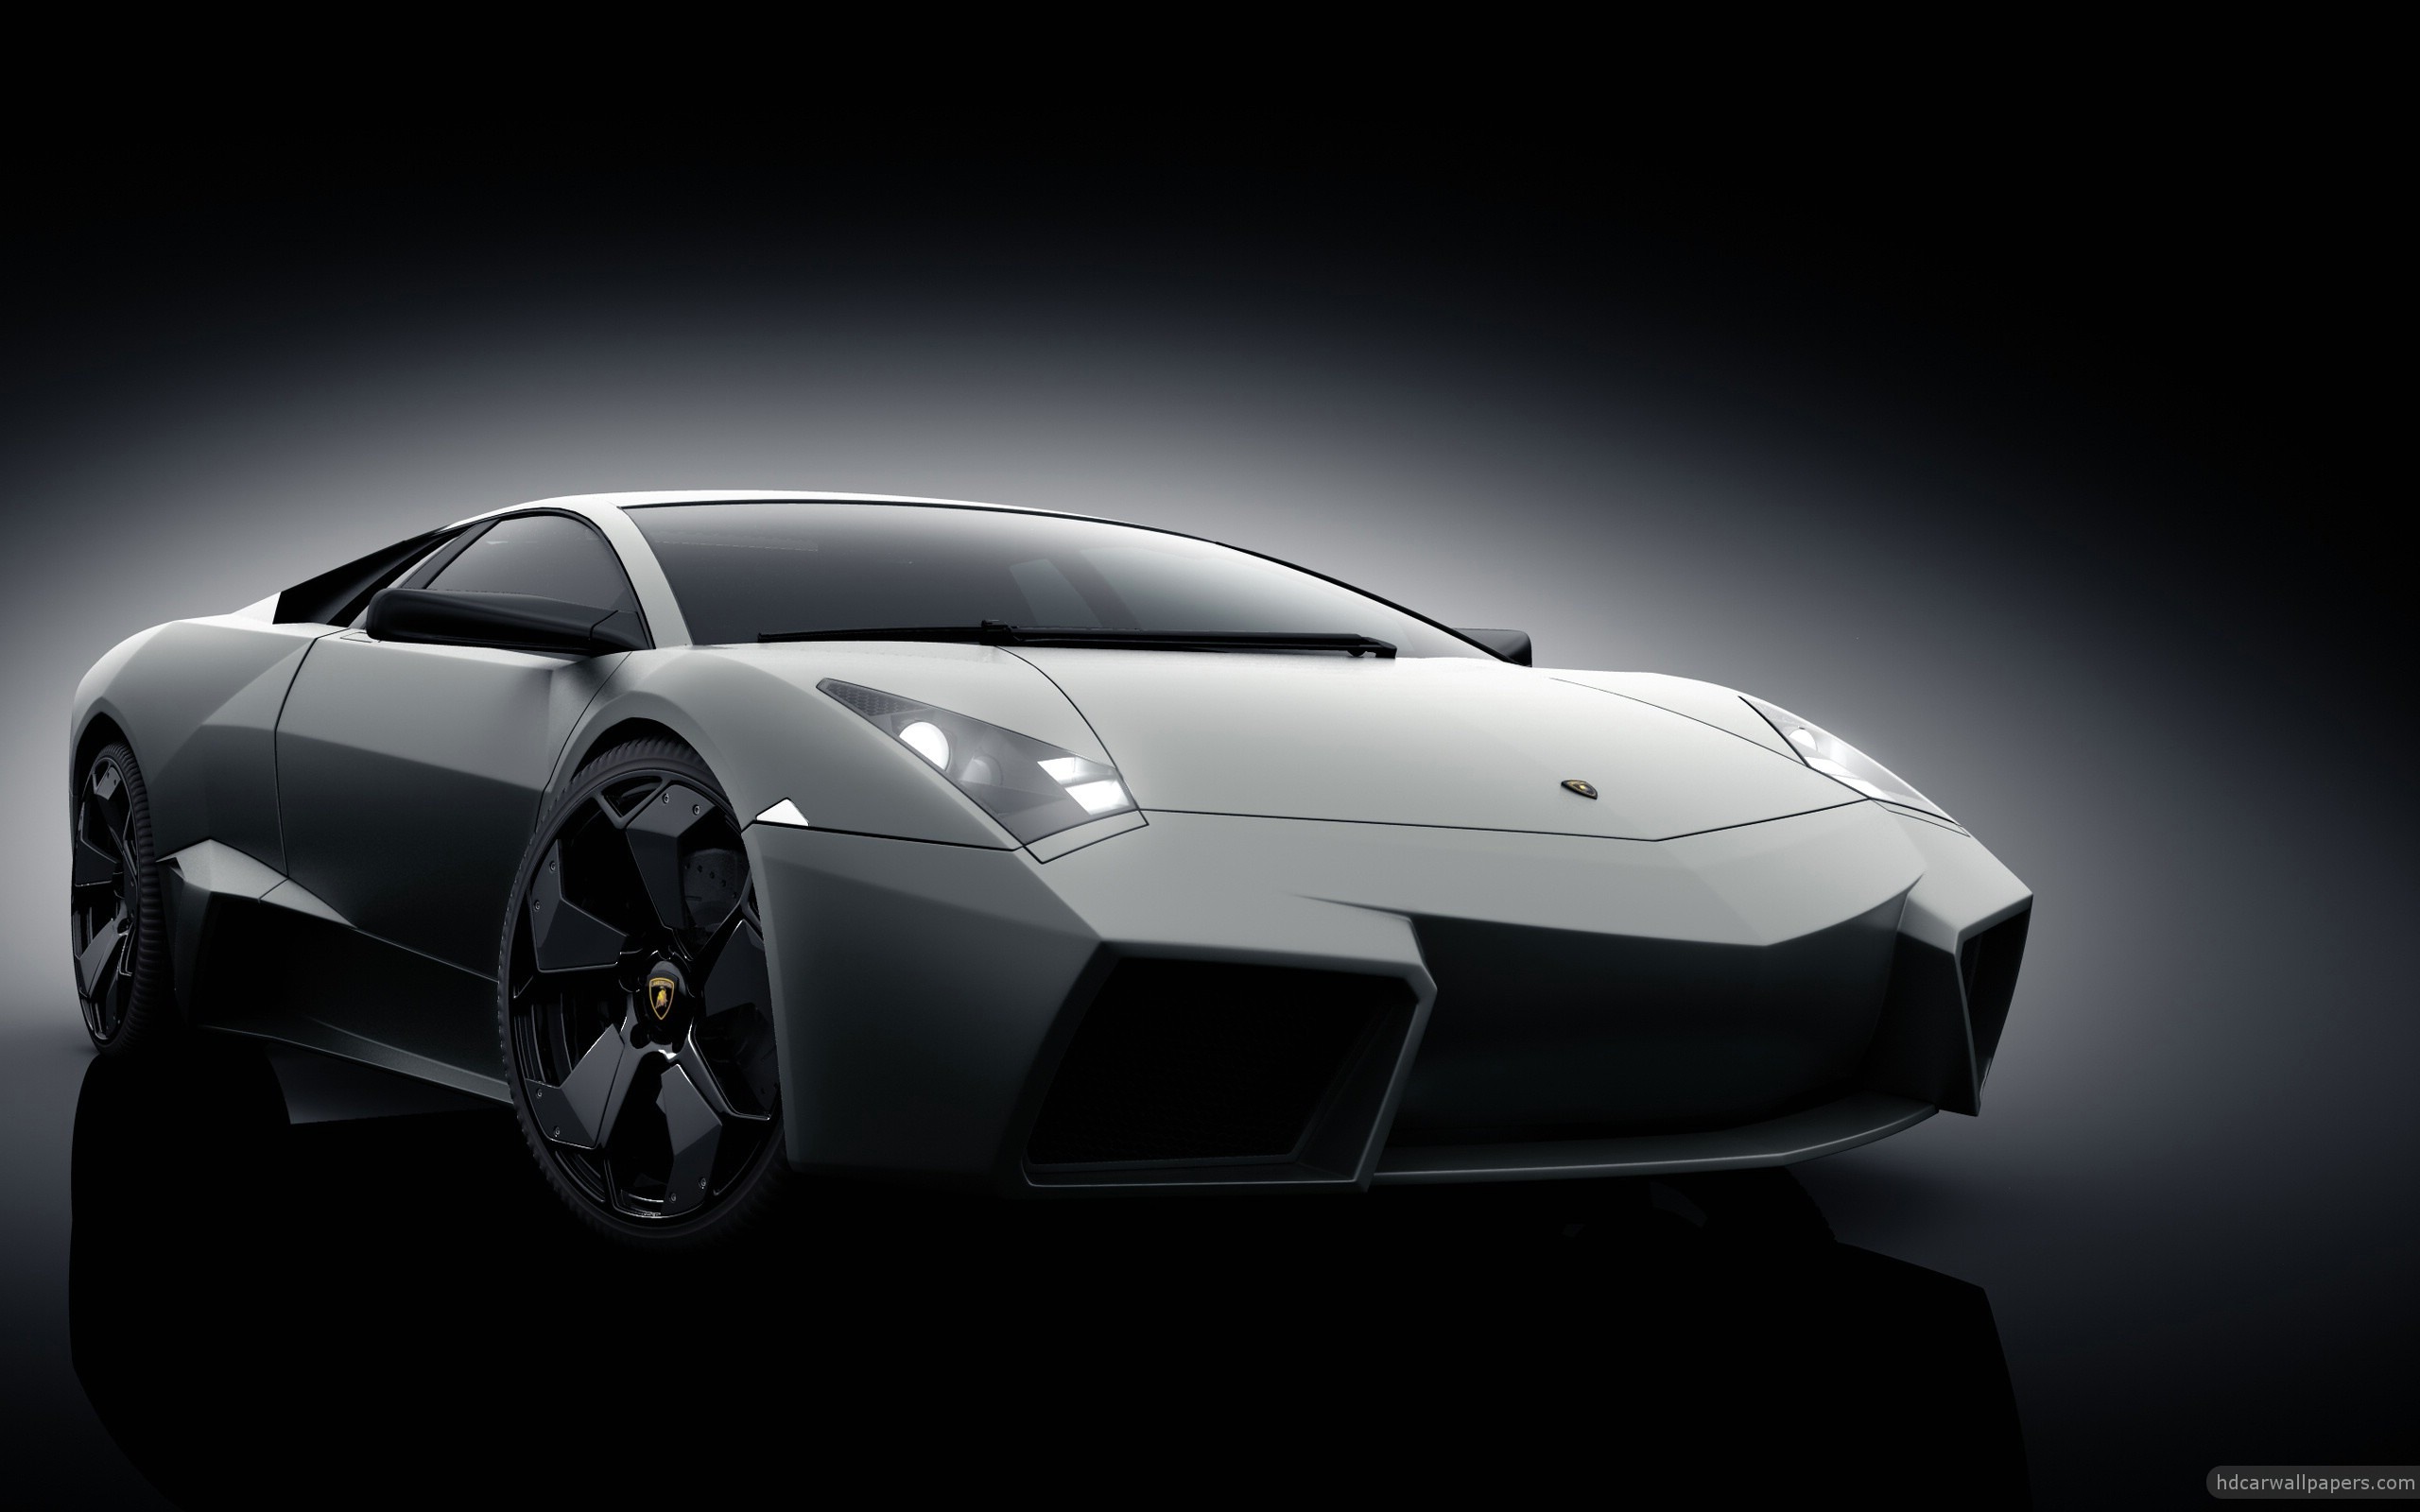 Amazing Lamborghini Wallpaper HD Car Wallpapers 2560x1600